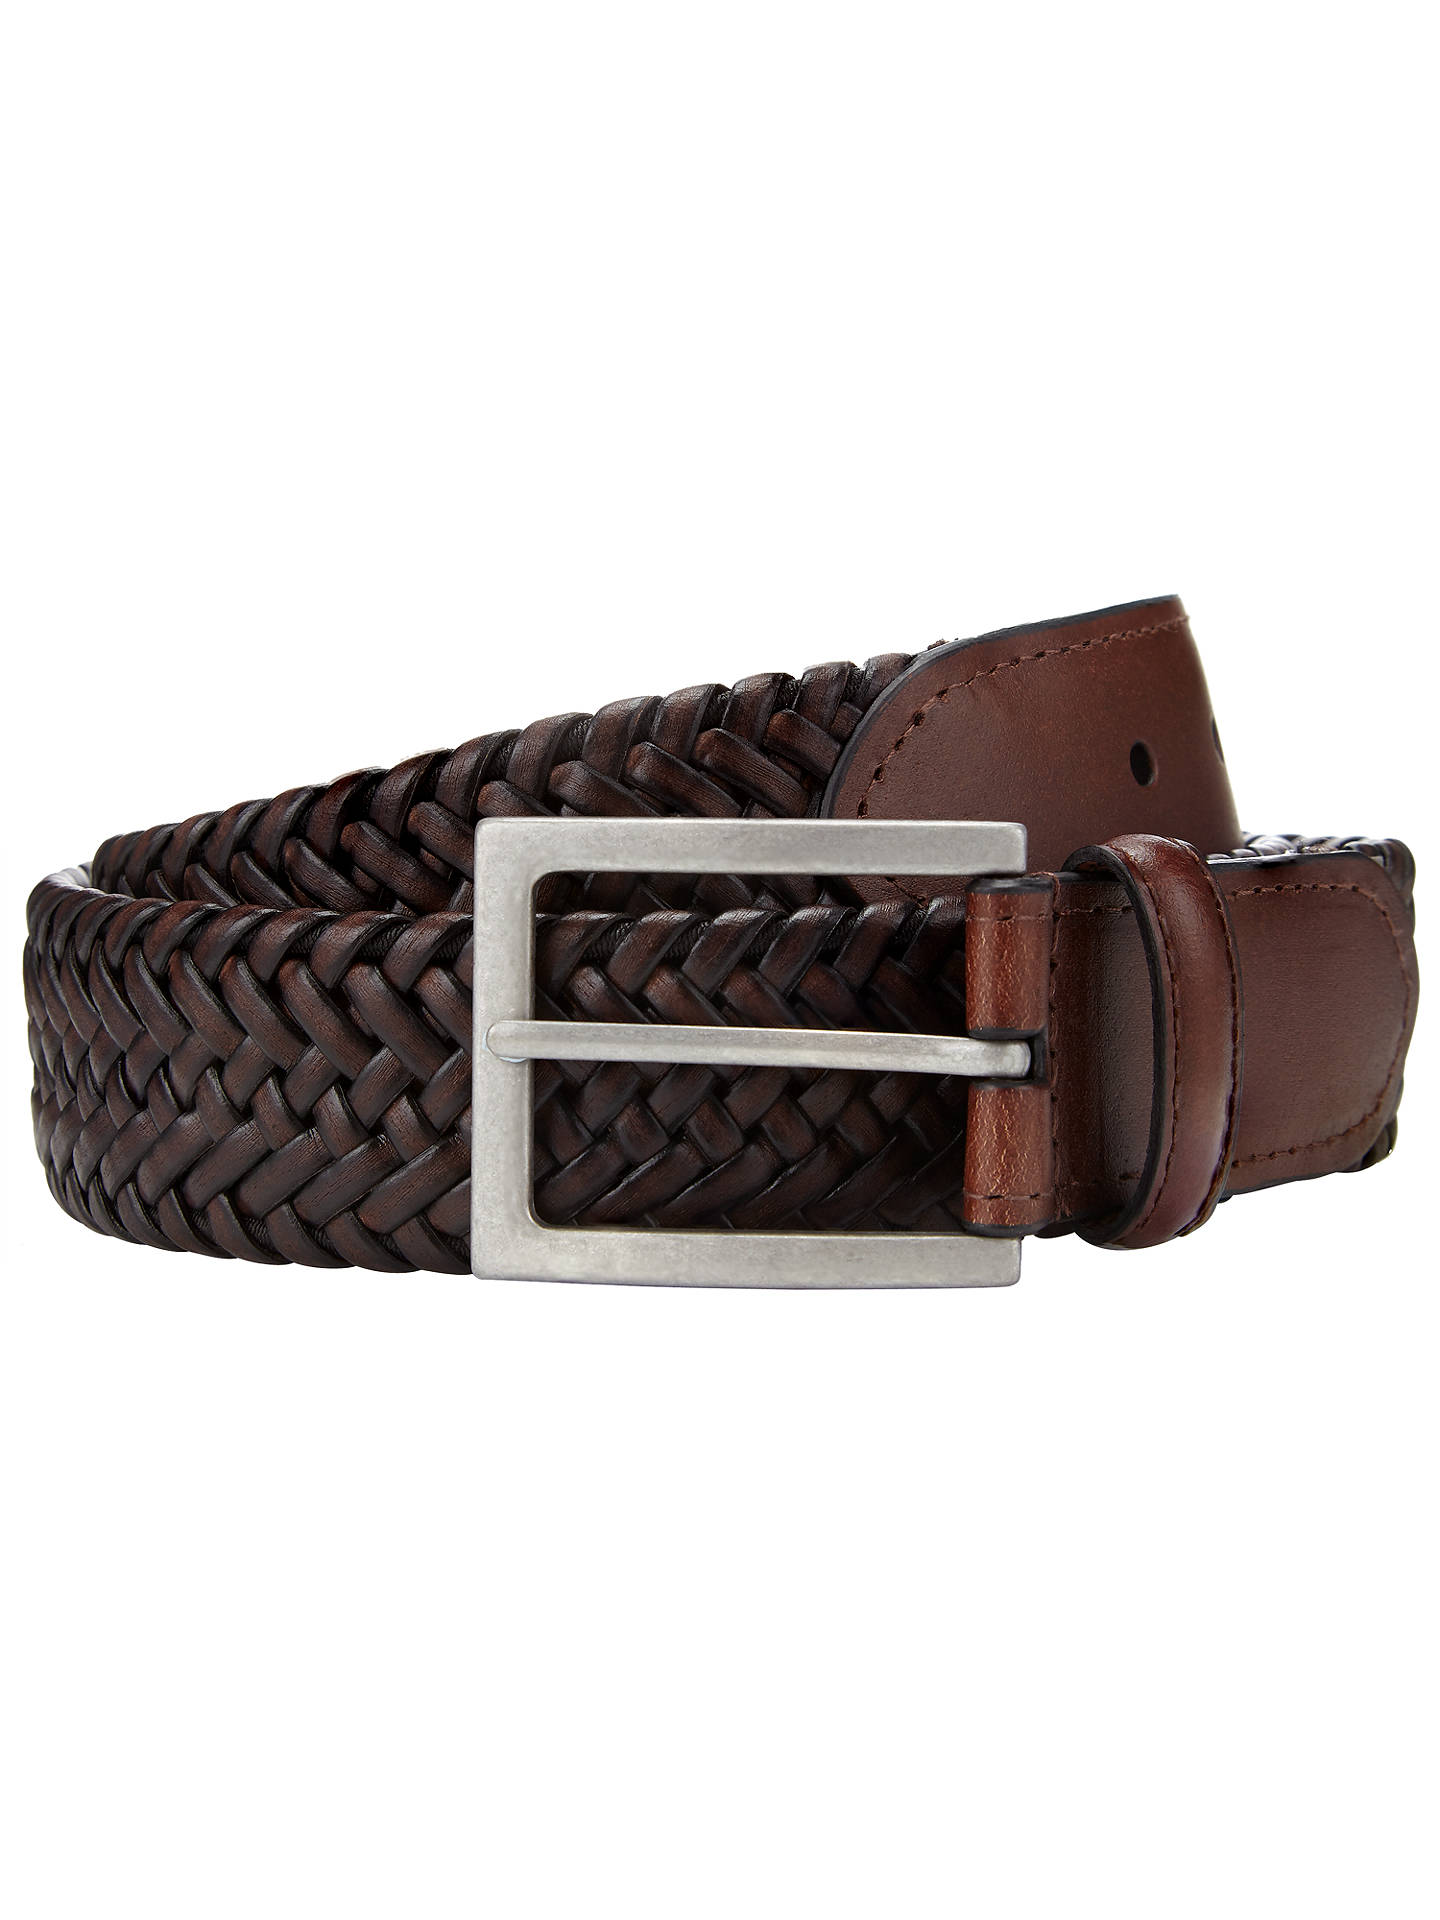 Buy John Lewis & Partners Elastic Plait Belt, Brown, S Online at johnlewis.com